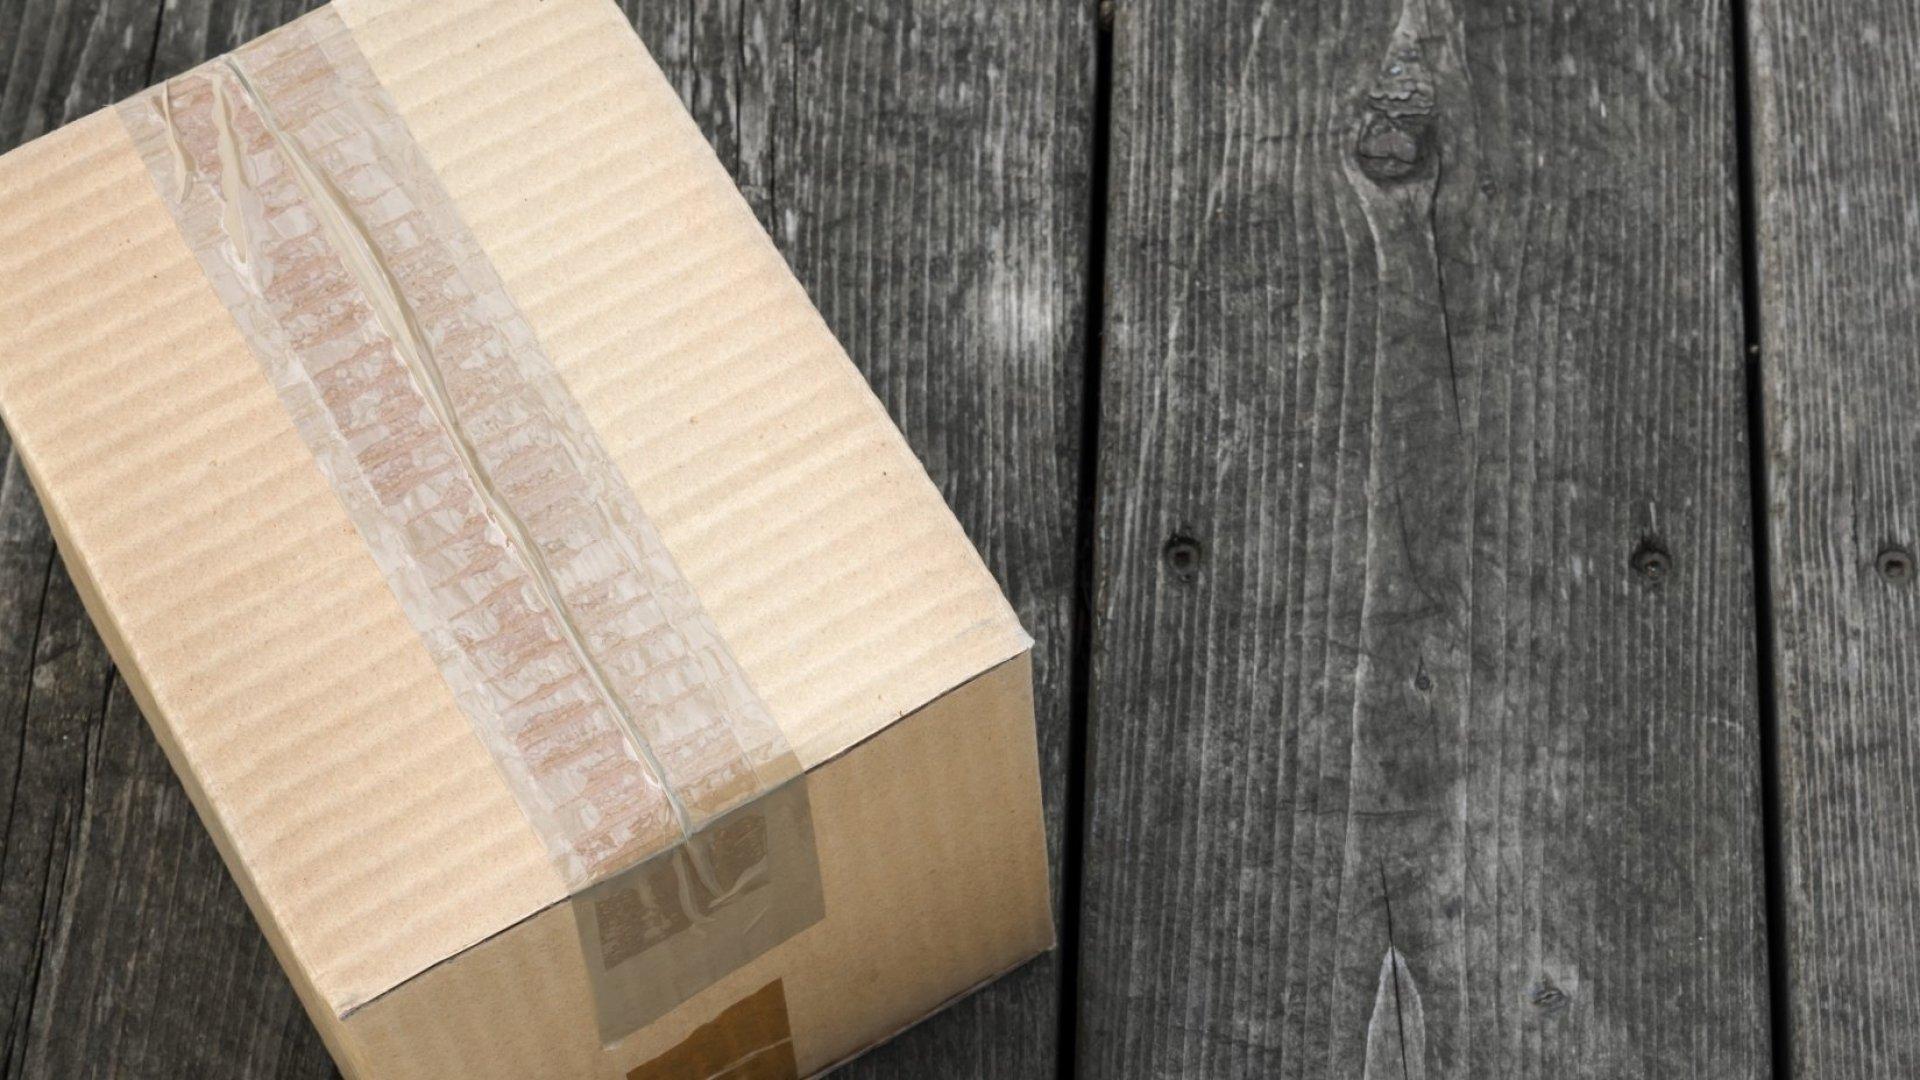 This 1 Simple Exercise Can Help You Make Big Business Decisions. All It Takes Is an Empty Box